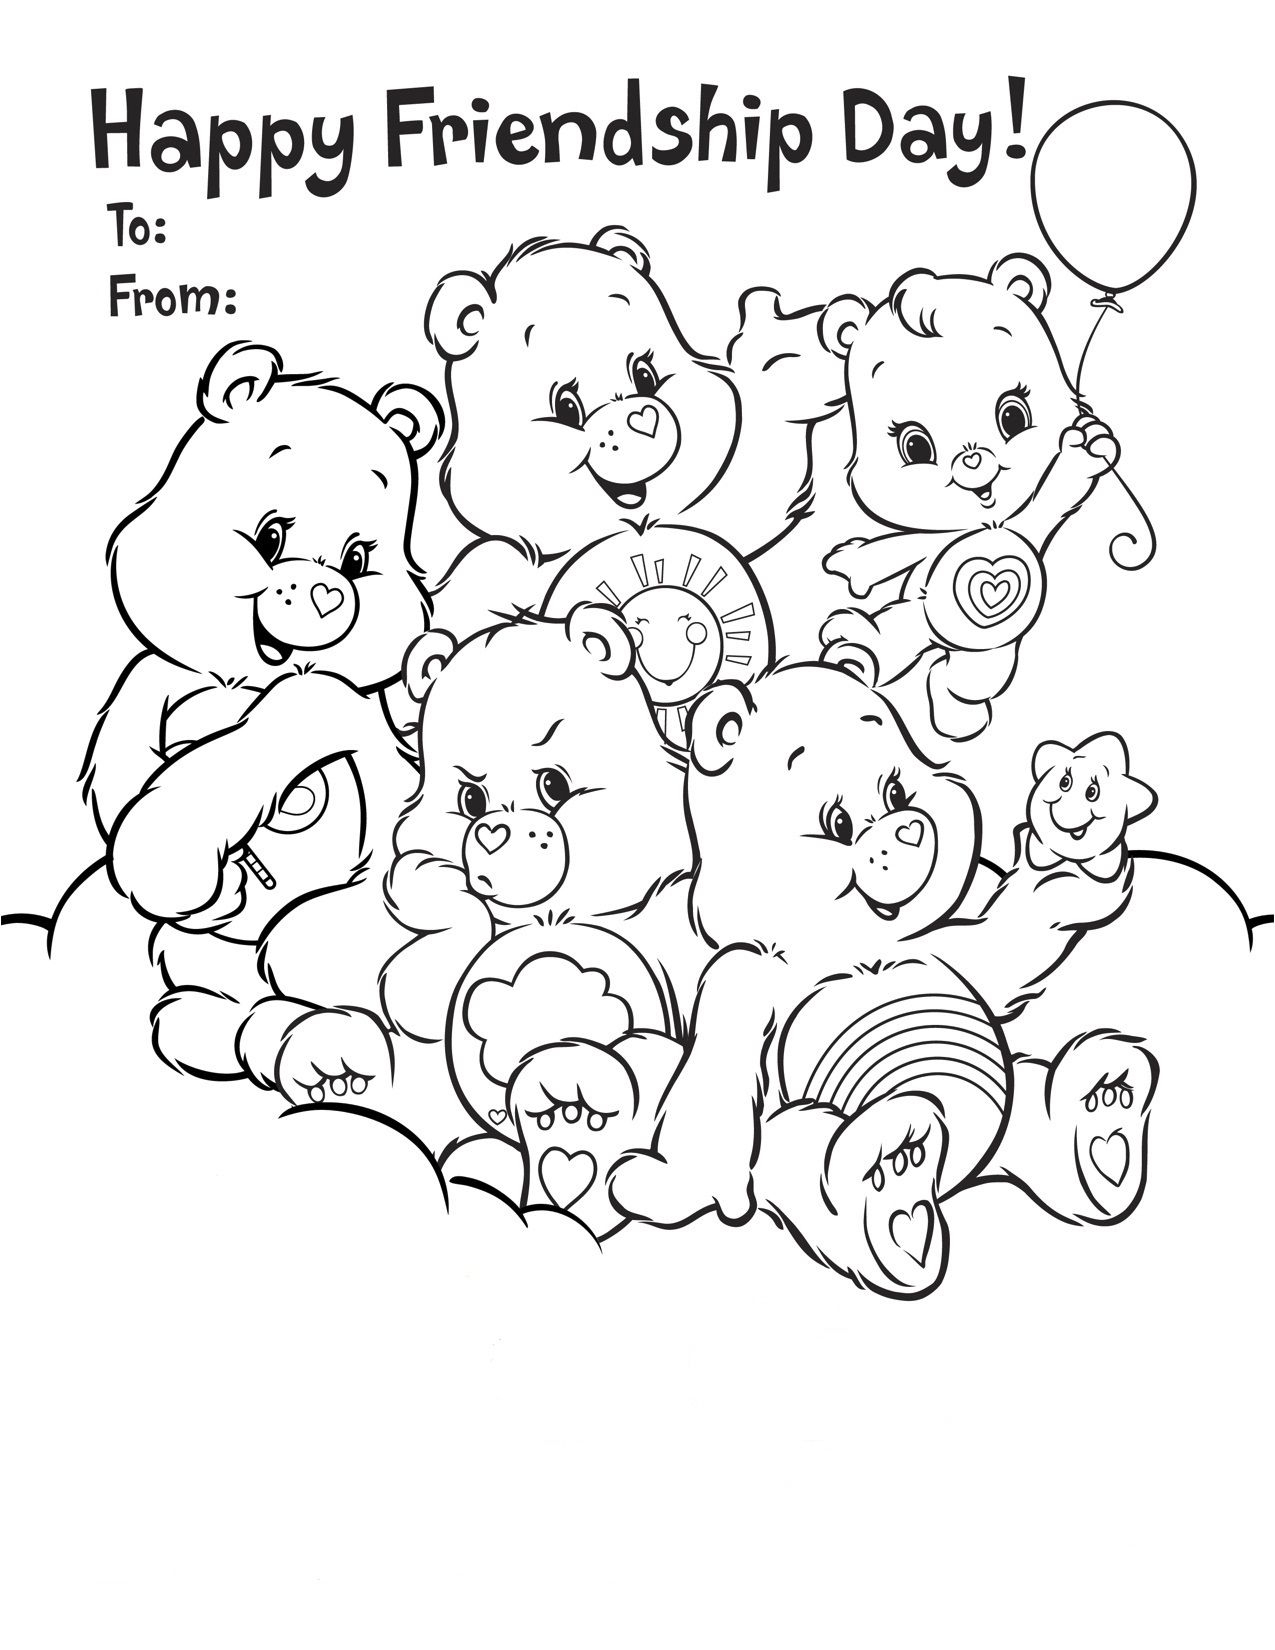 Friendship+Coloring+Pages+Printable   Coloring Pages   Pinterest - Free Printable Bff Coloring Pages